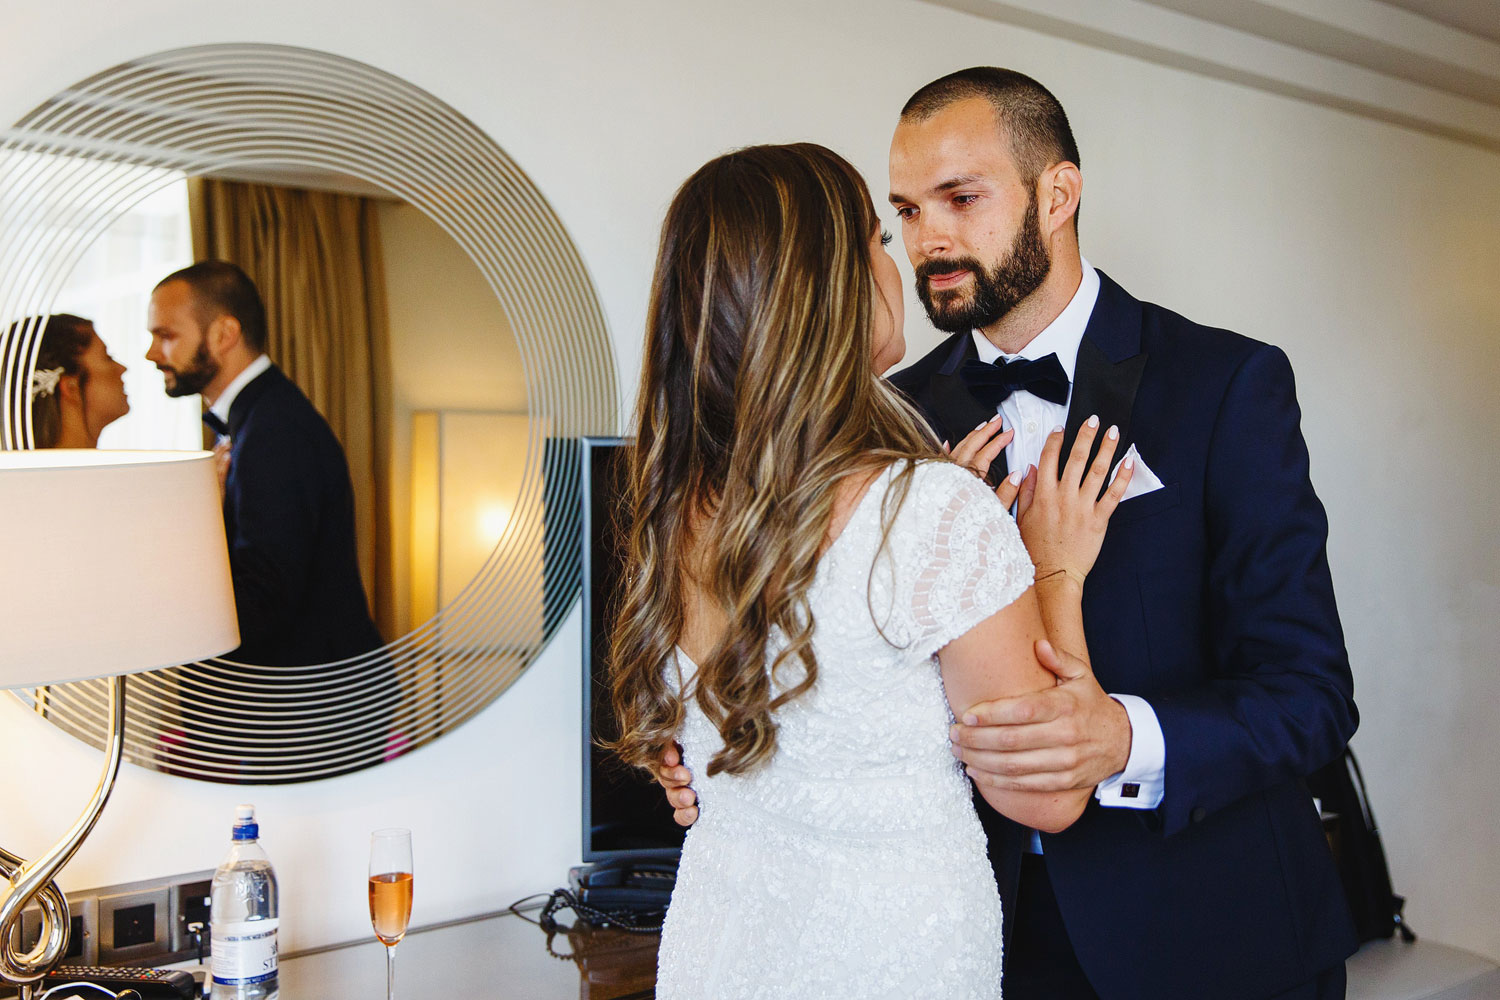 Groom sees his bride for the first time before the wedding at the Old Marylebone Town Hall - London wedding photographer